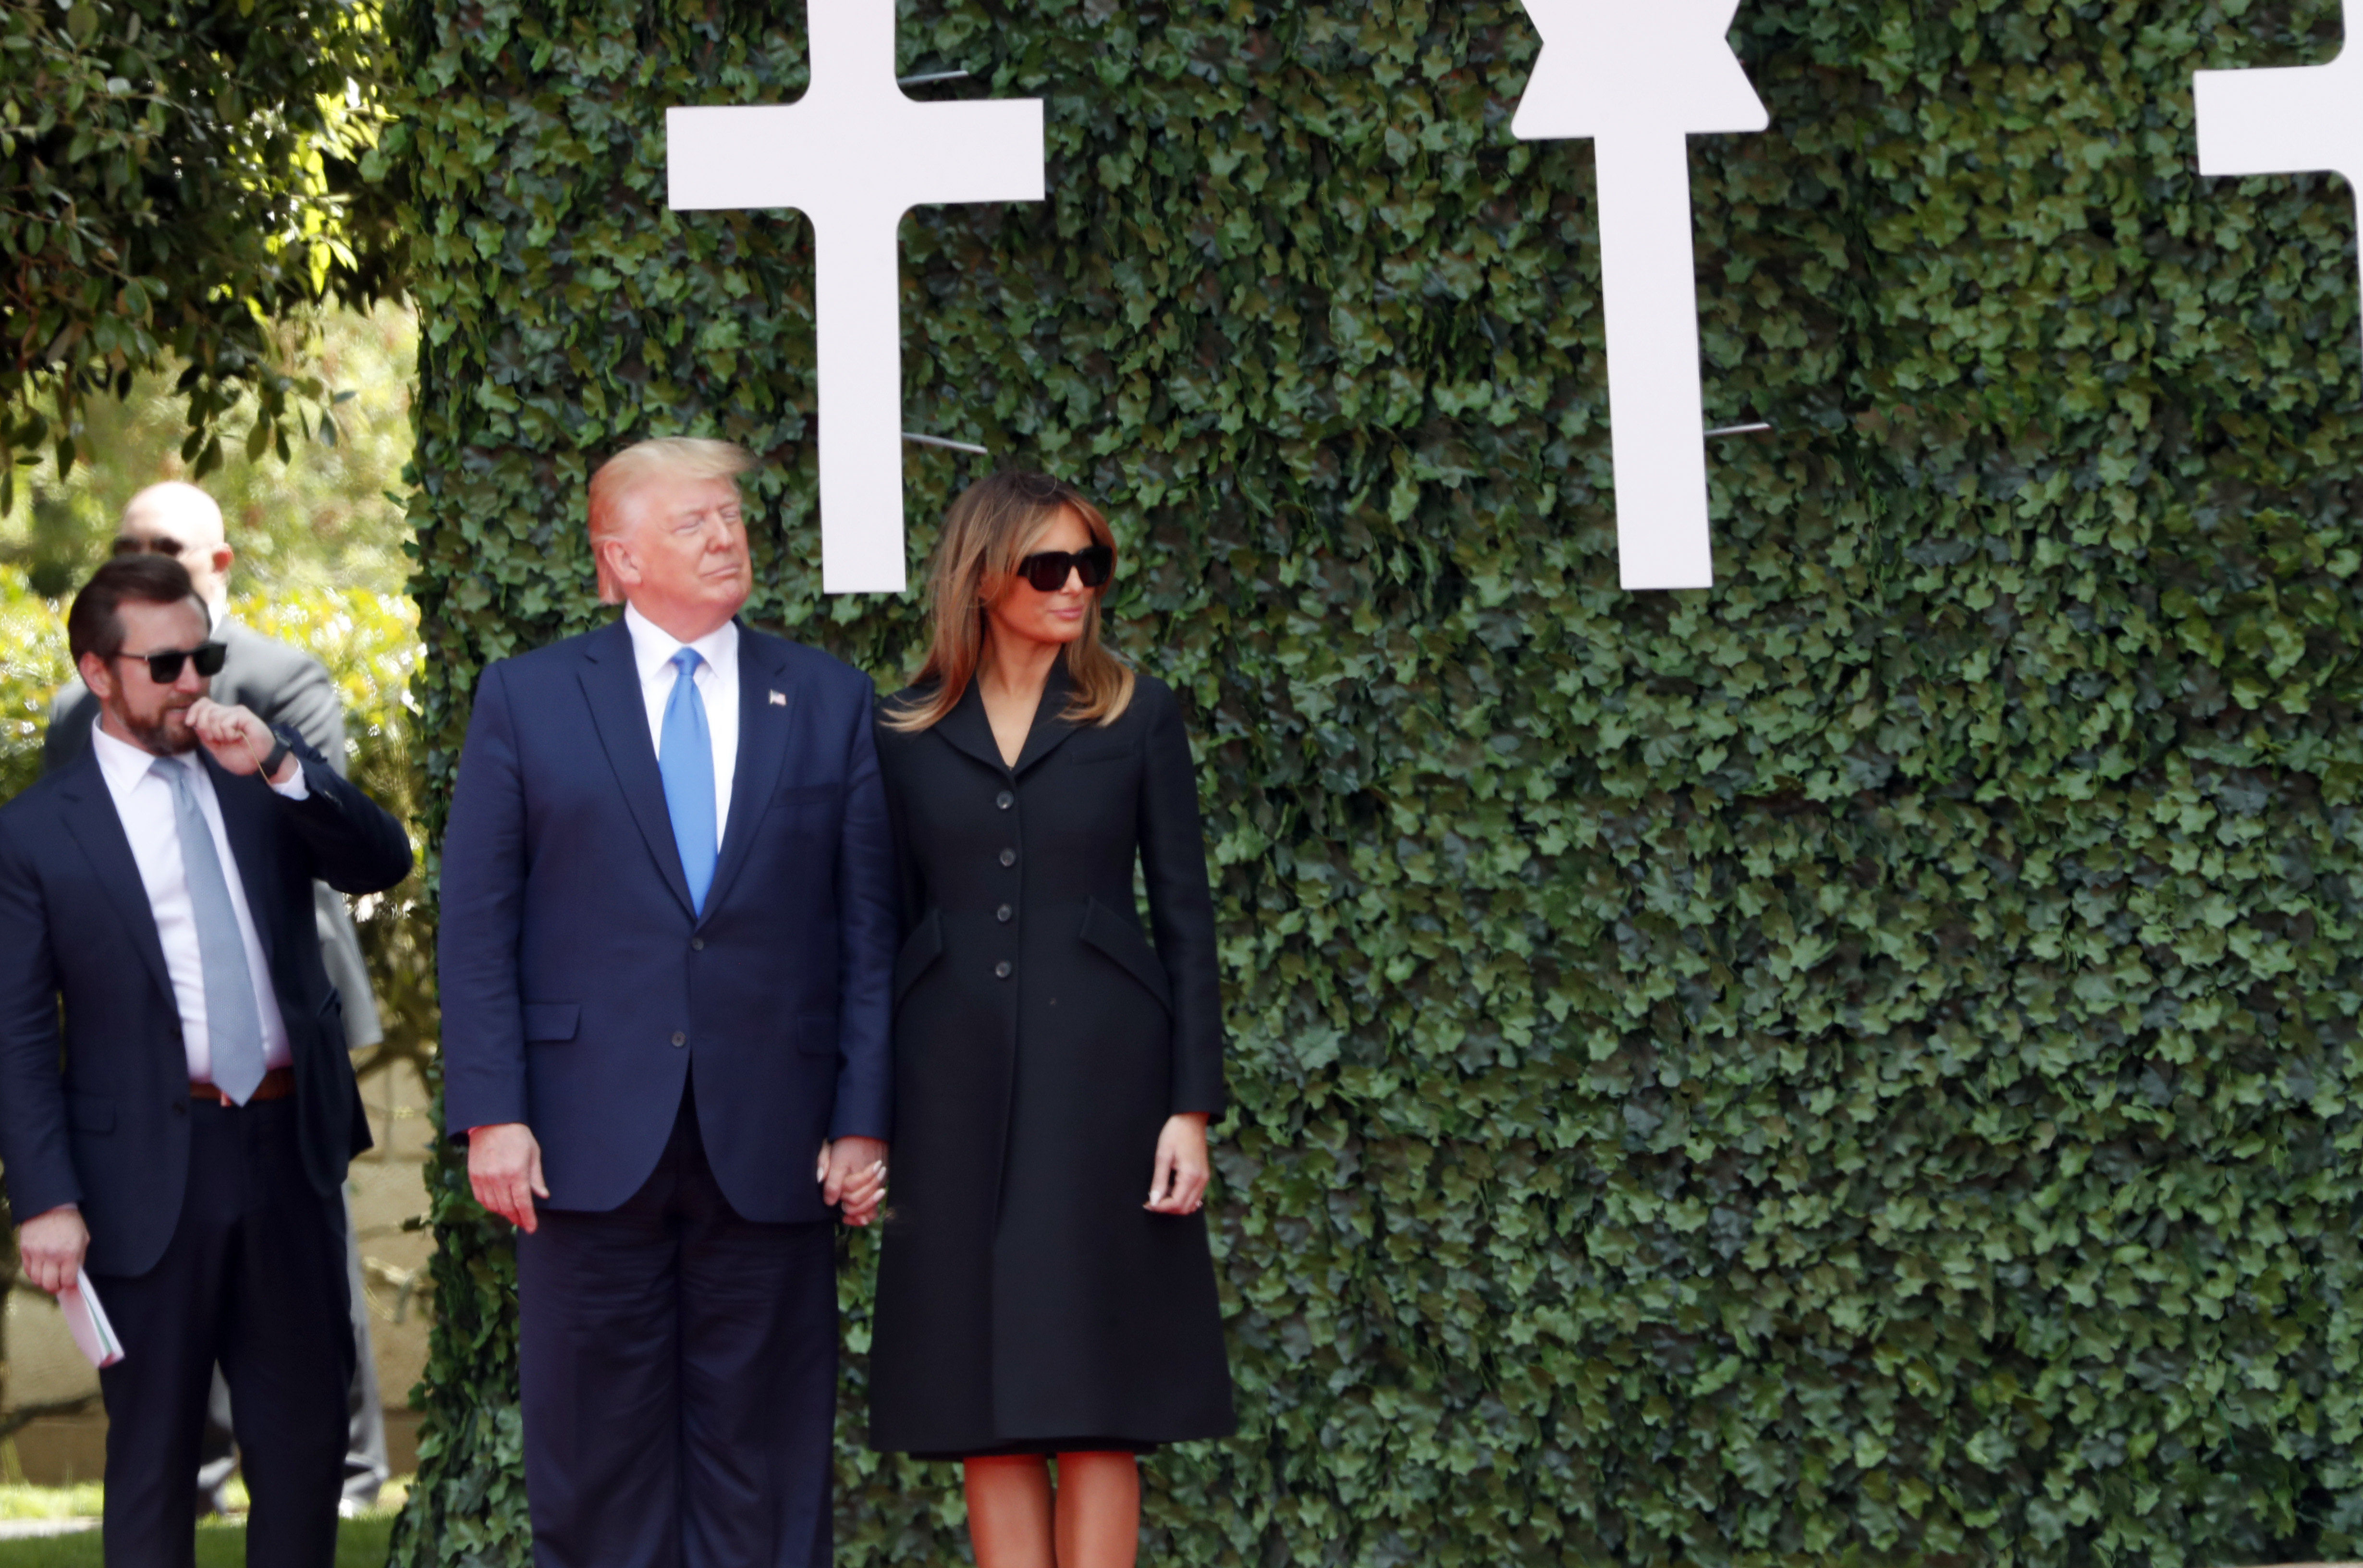 U.S. President Donald Trump and first lady Melania Trump arrive for a ceremony to mark the 75th anniversary of D-Day at the Normandy American Cemetery in Colleville-sur-Mer, Normandy, France, Thursday, June 6, 2019. World leaders are gathered Thursday in France to mark the 75th anniversary of the D-Day landings. (AP Photo/Thibault Camus)